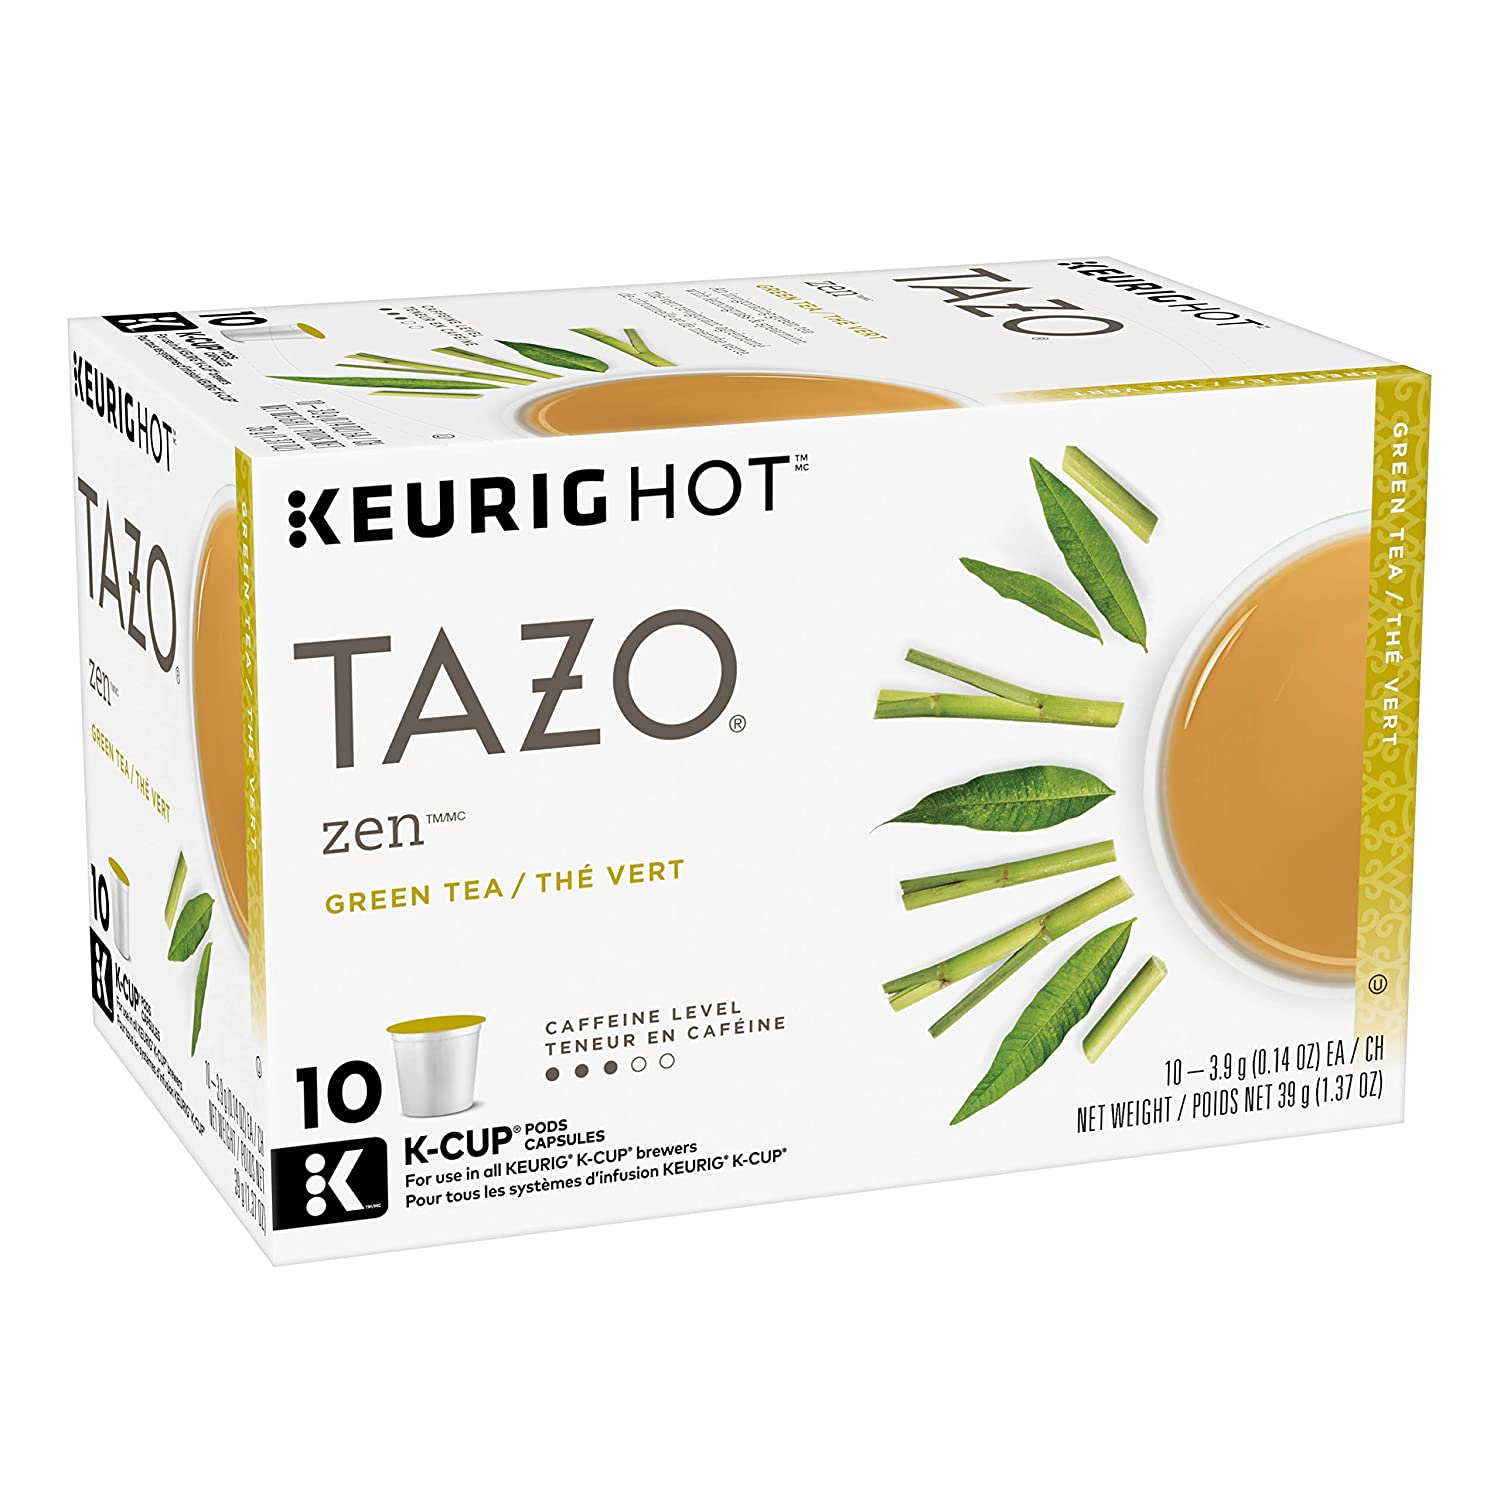 Tazo Zen K-Cup Pods For a Calming Tea Green Tea Moderately Caffeinated Morning Drink 10 K-Cup Pods